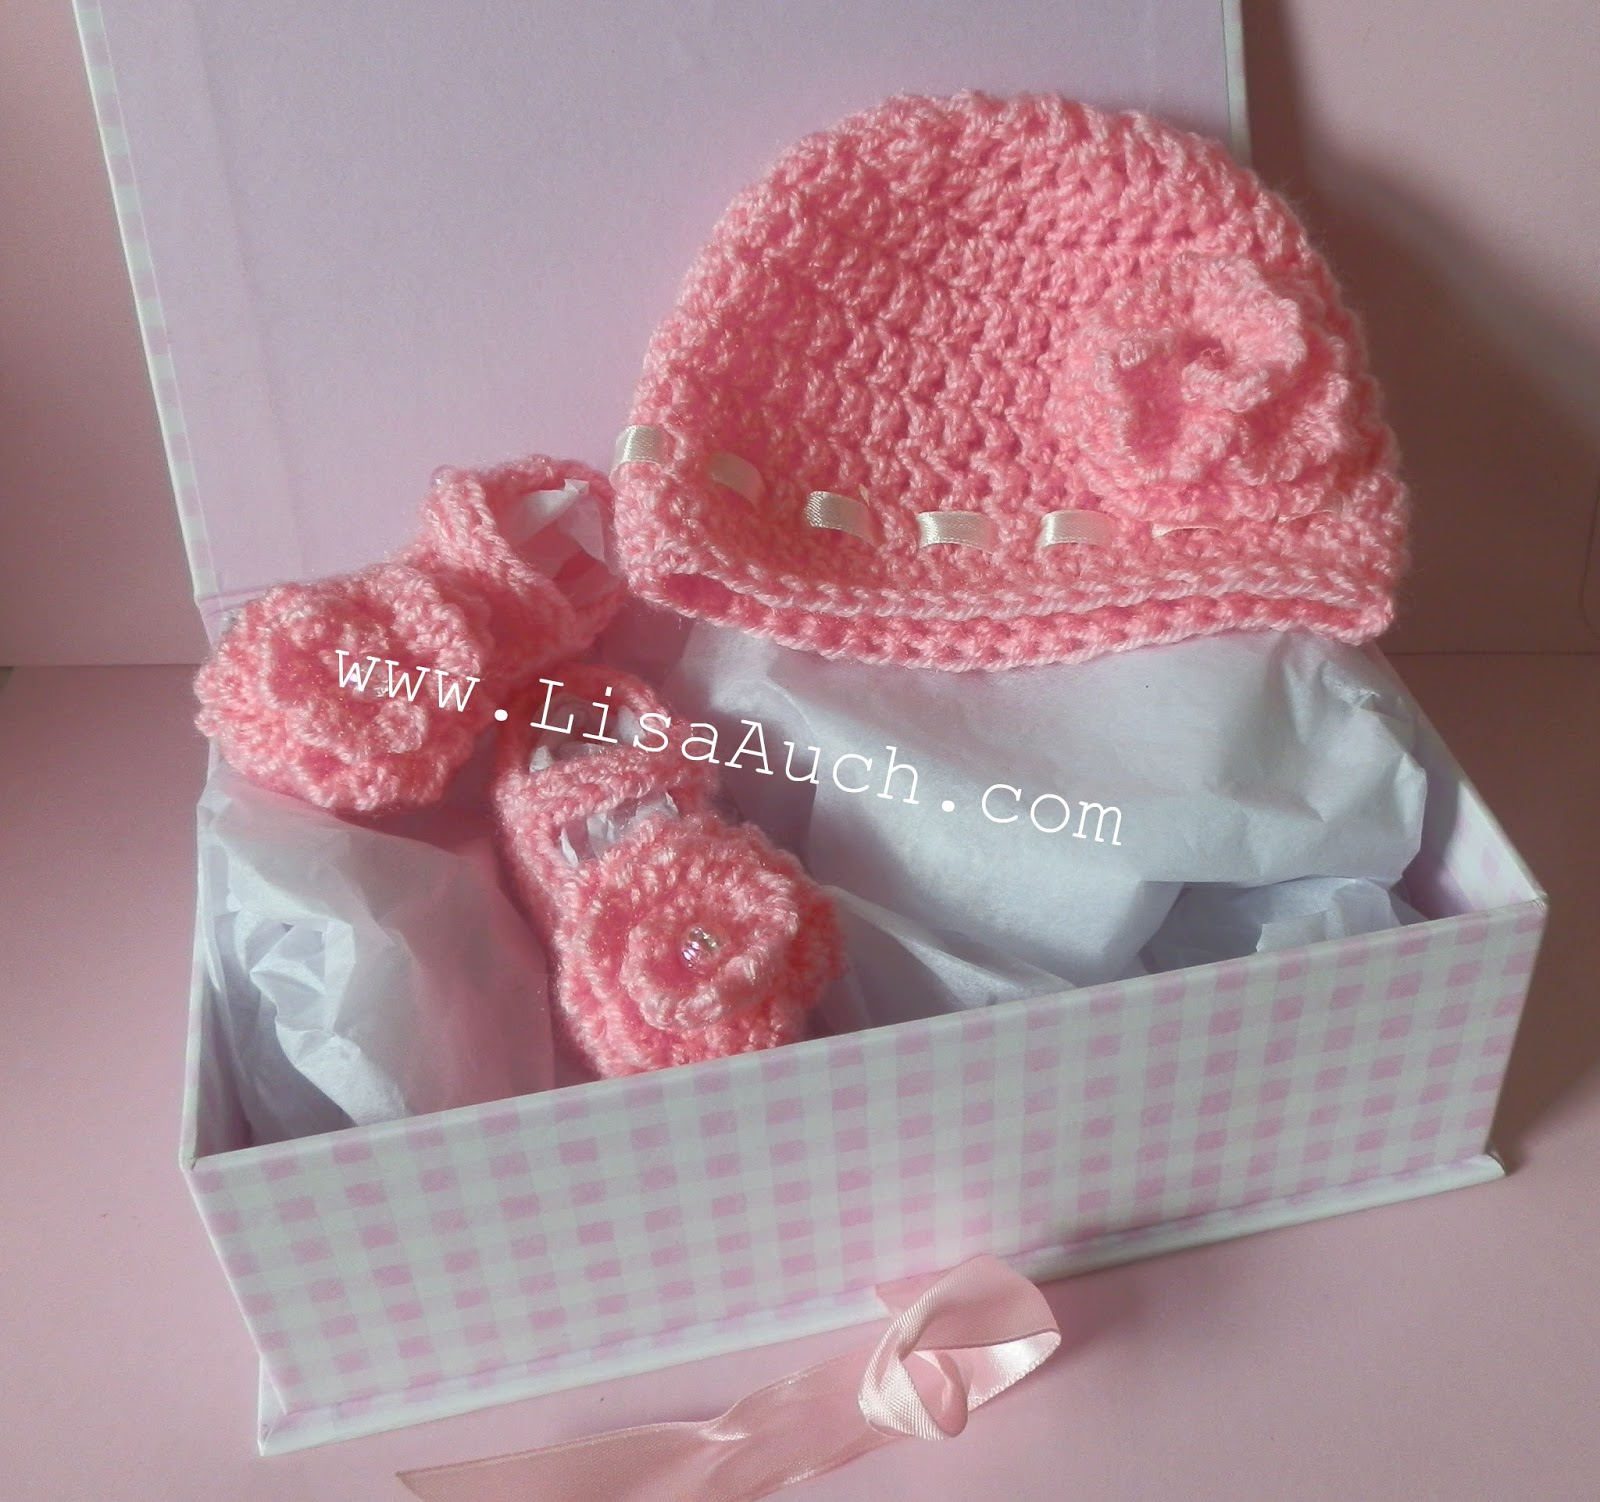 Crochet Baby Booties Pattern For Free : FREE CROCHET BABY BUNTING SET PATTERN - Crochet and ...